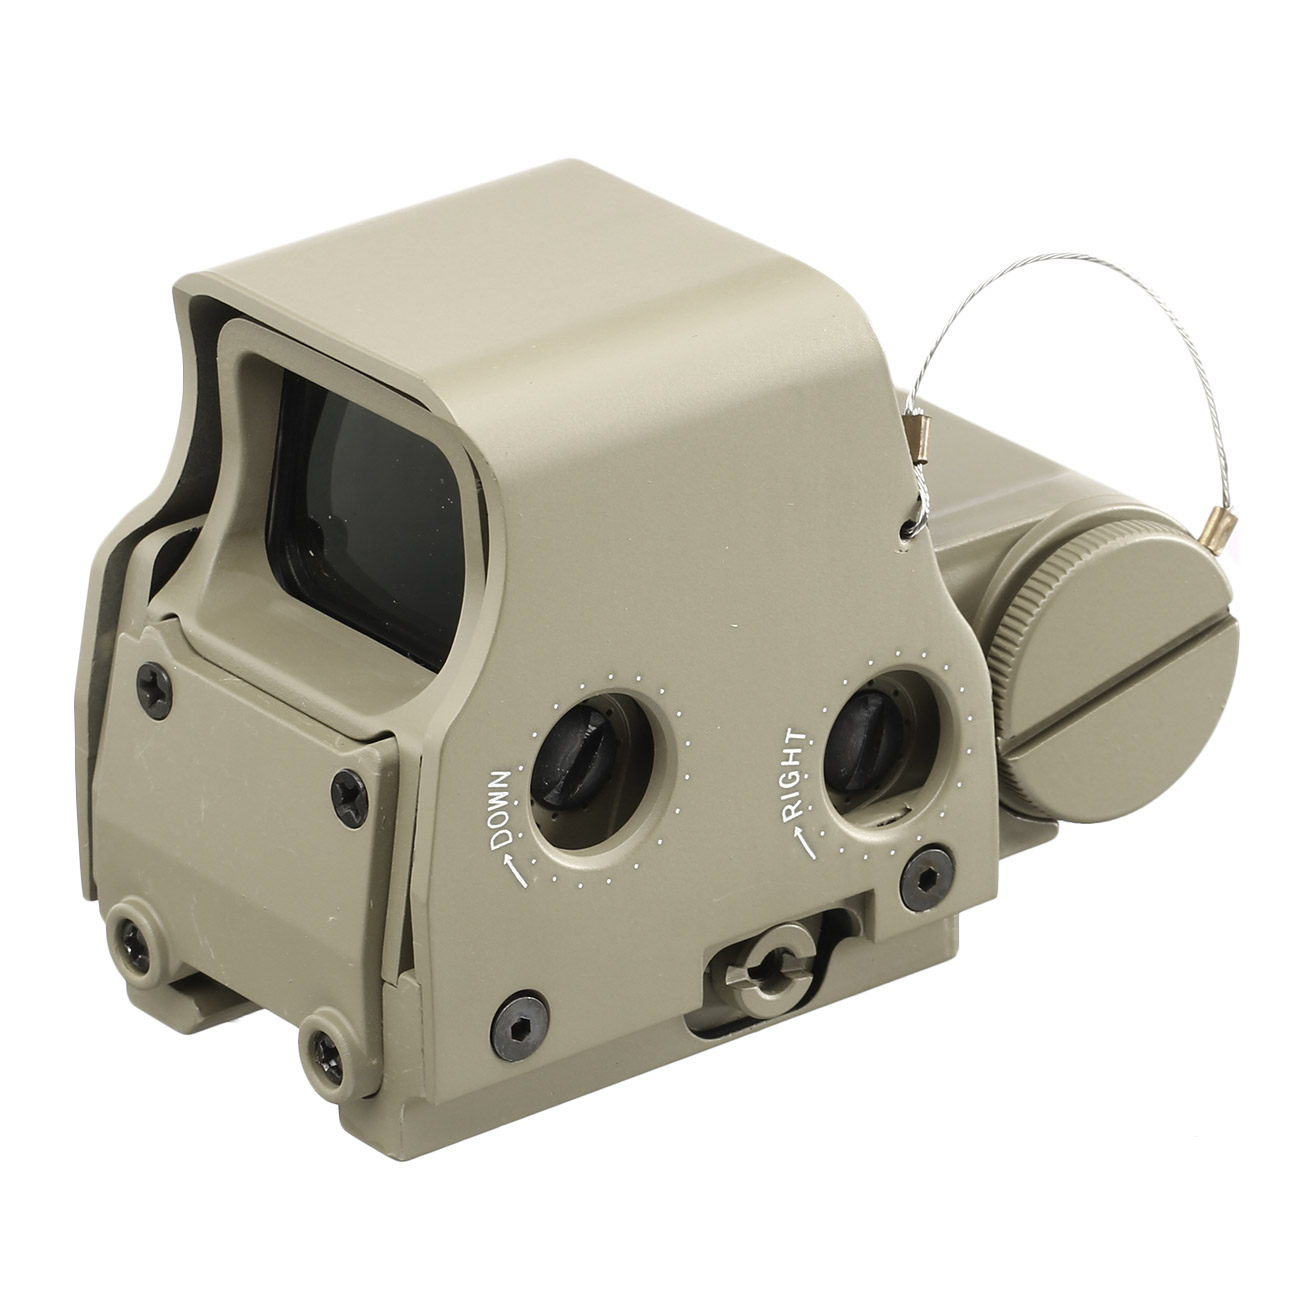 Aim-O X2 Type Holosight rot / grün mit QD Mount tan AO 3056-DE 2